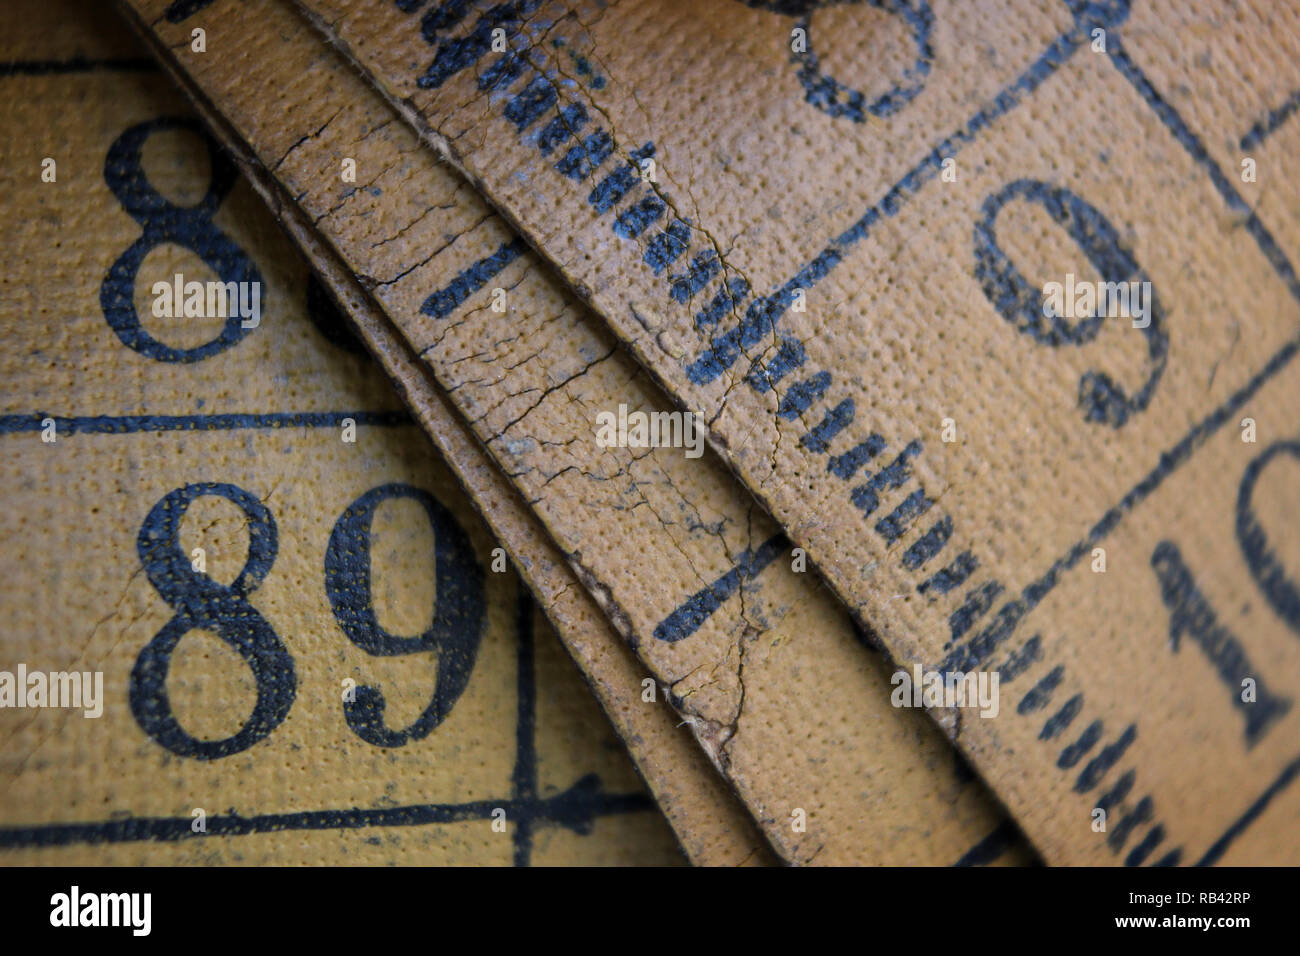 Old measuring tape isolated on white background, close-up - Stock Image